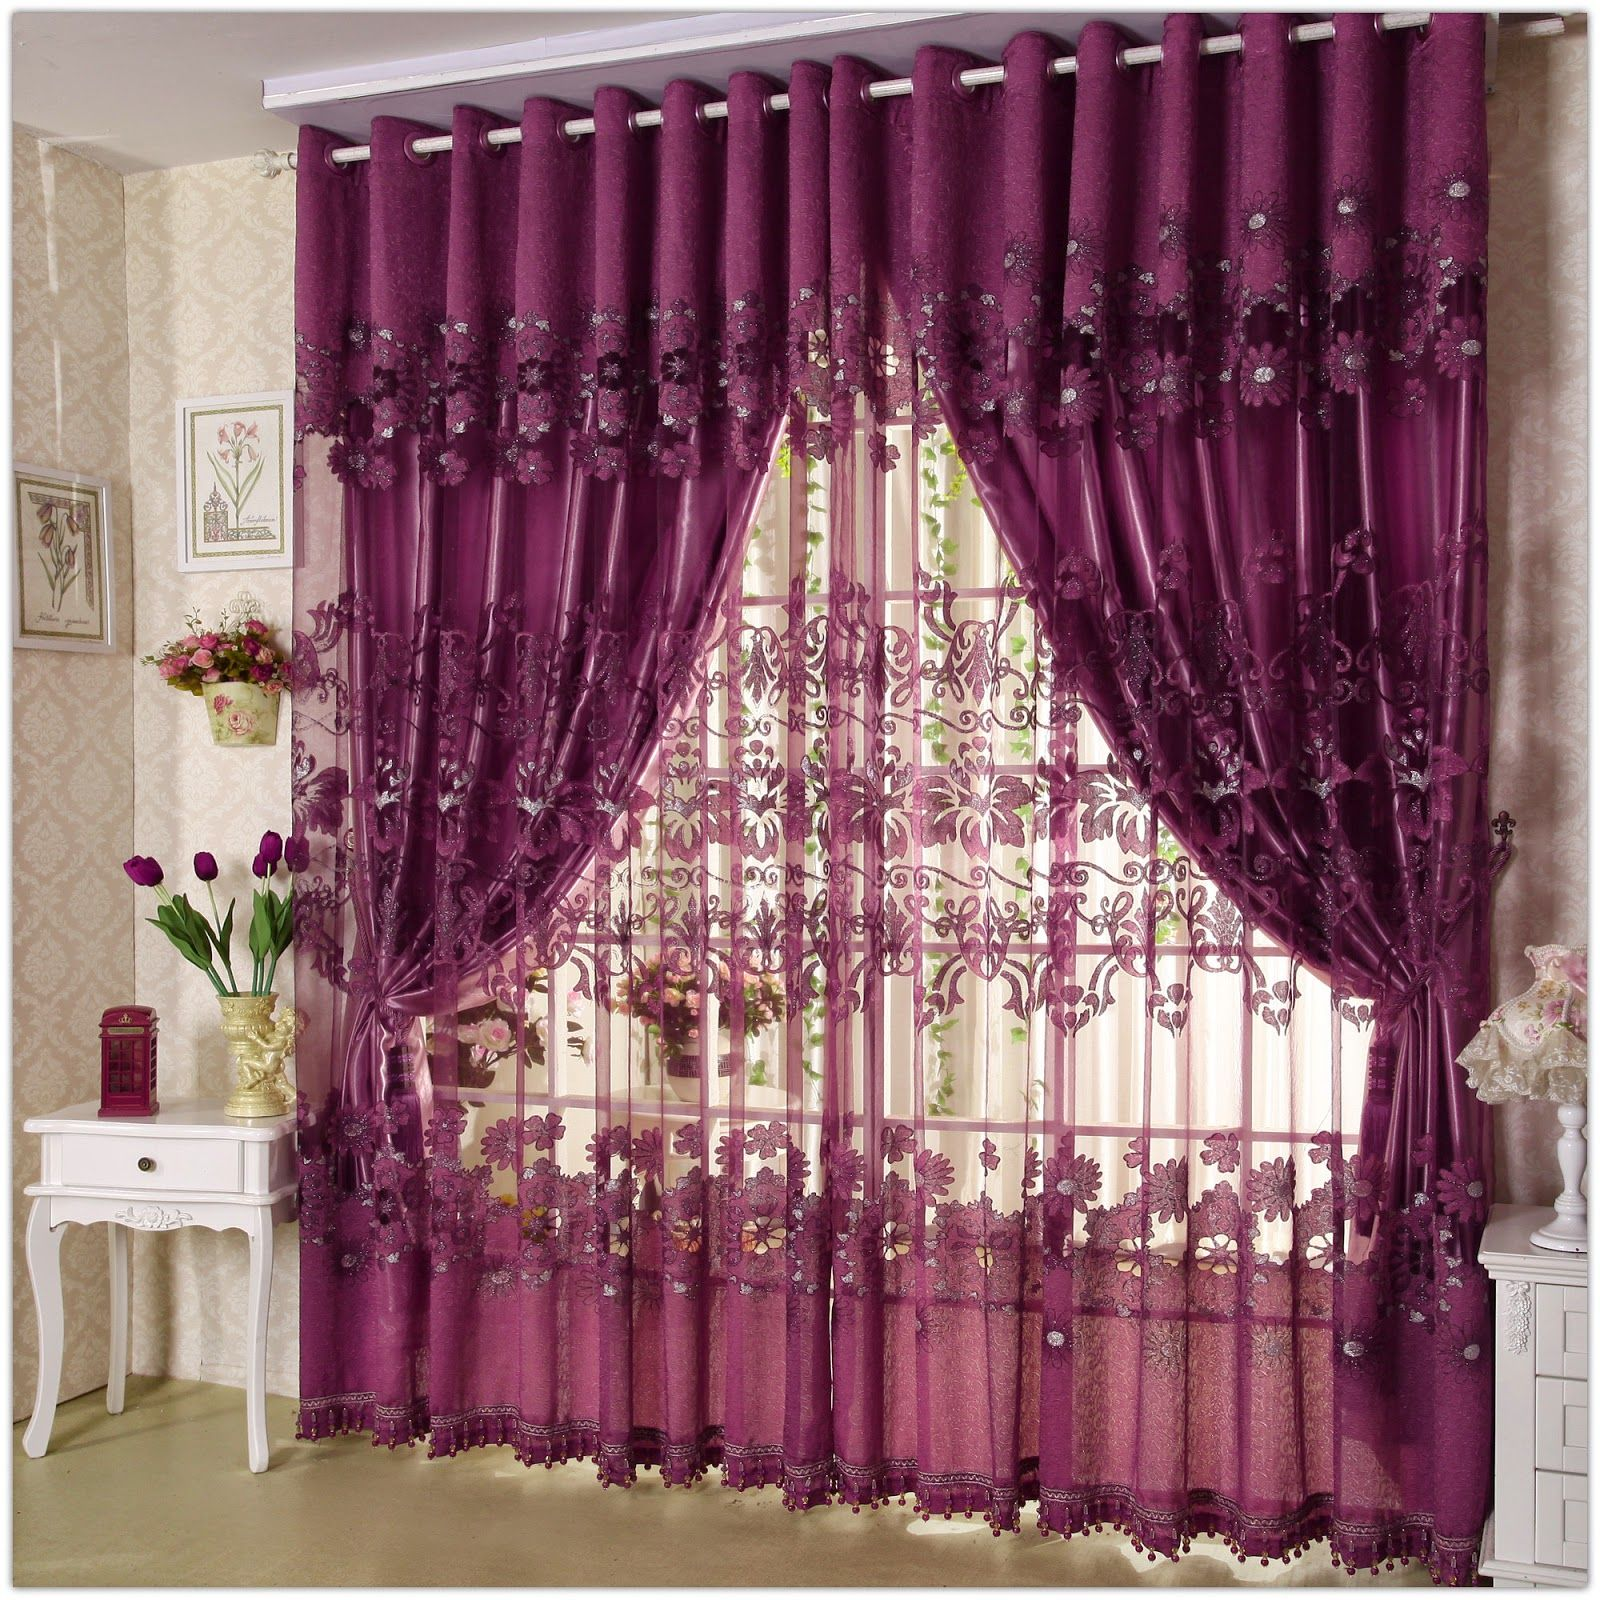 Living Room Window Treatments Unique Curtain Designs For Living Room Window Decorations Unique